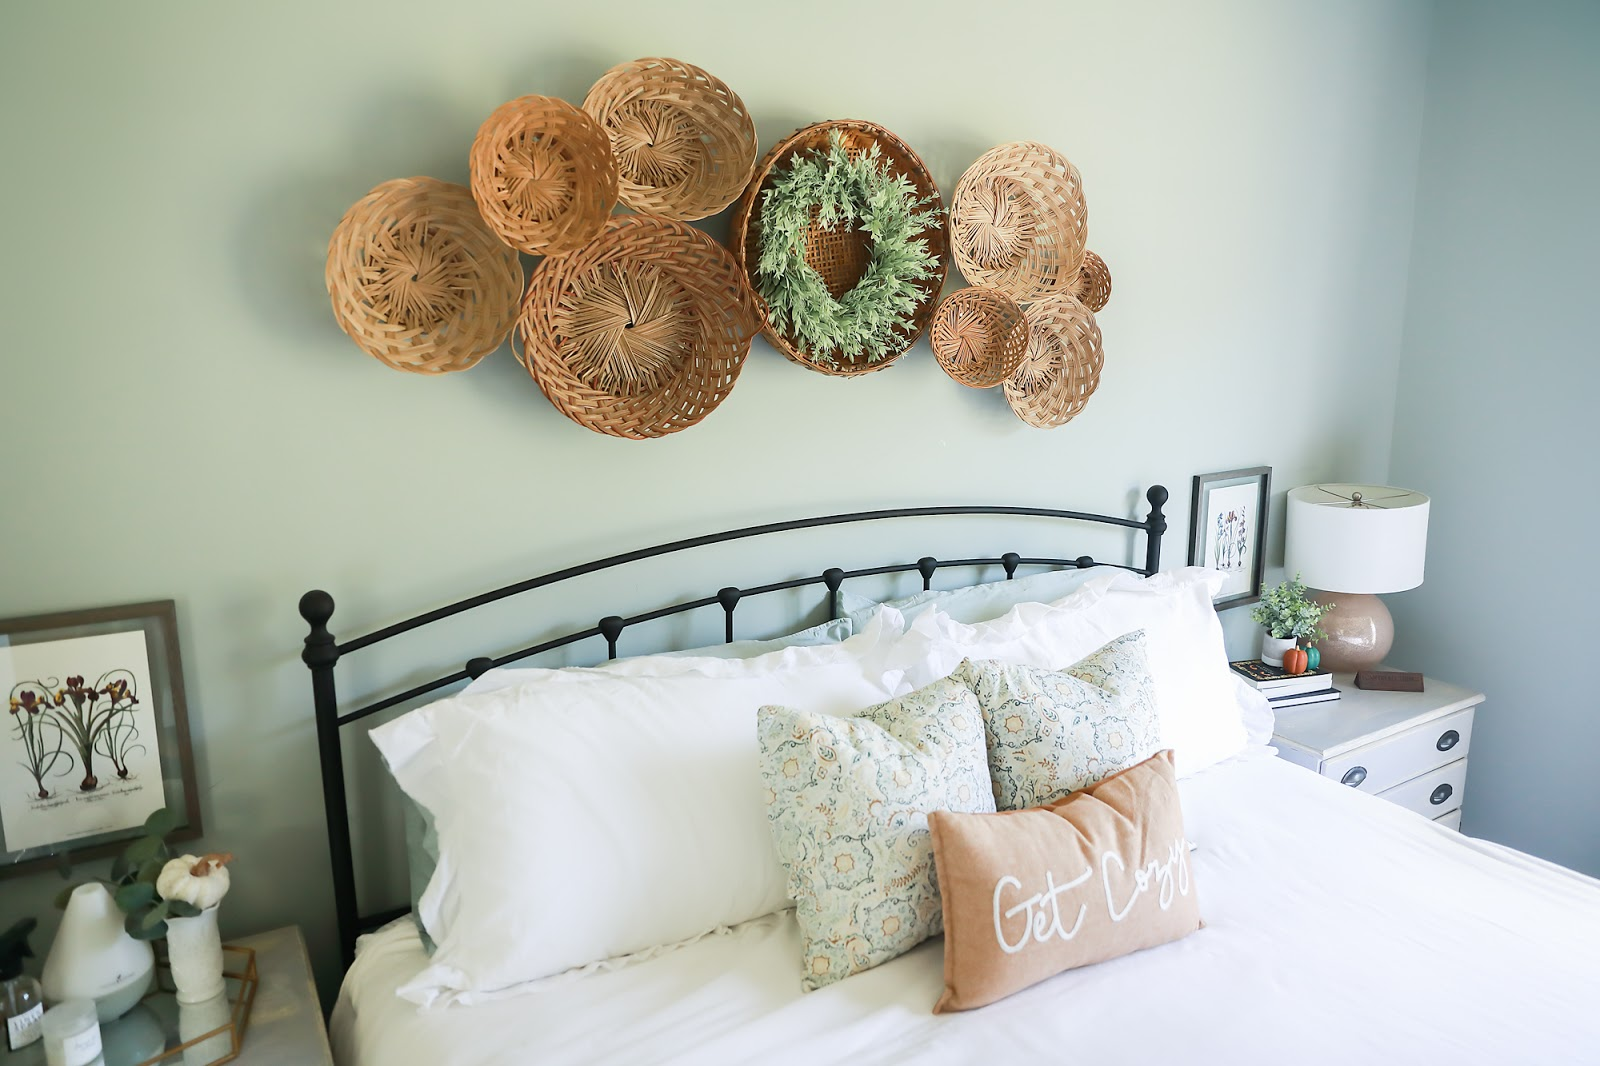 How to create a basket wall.